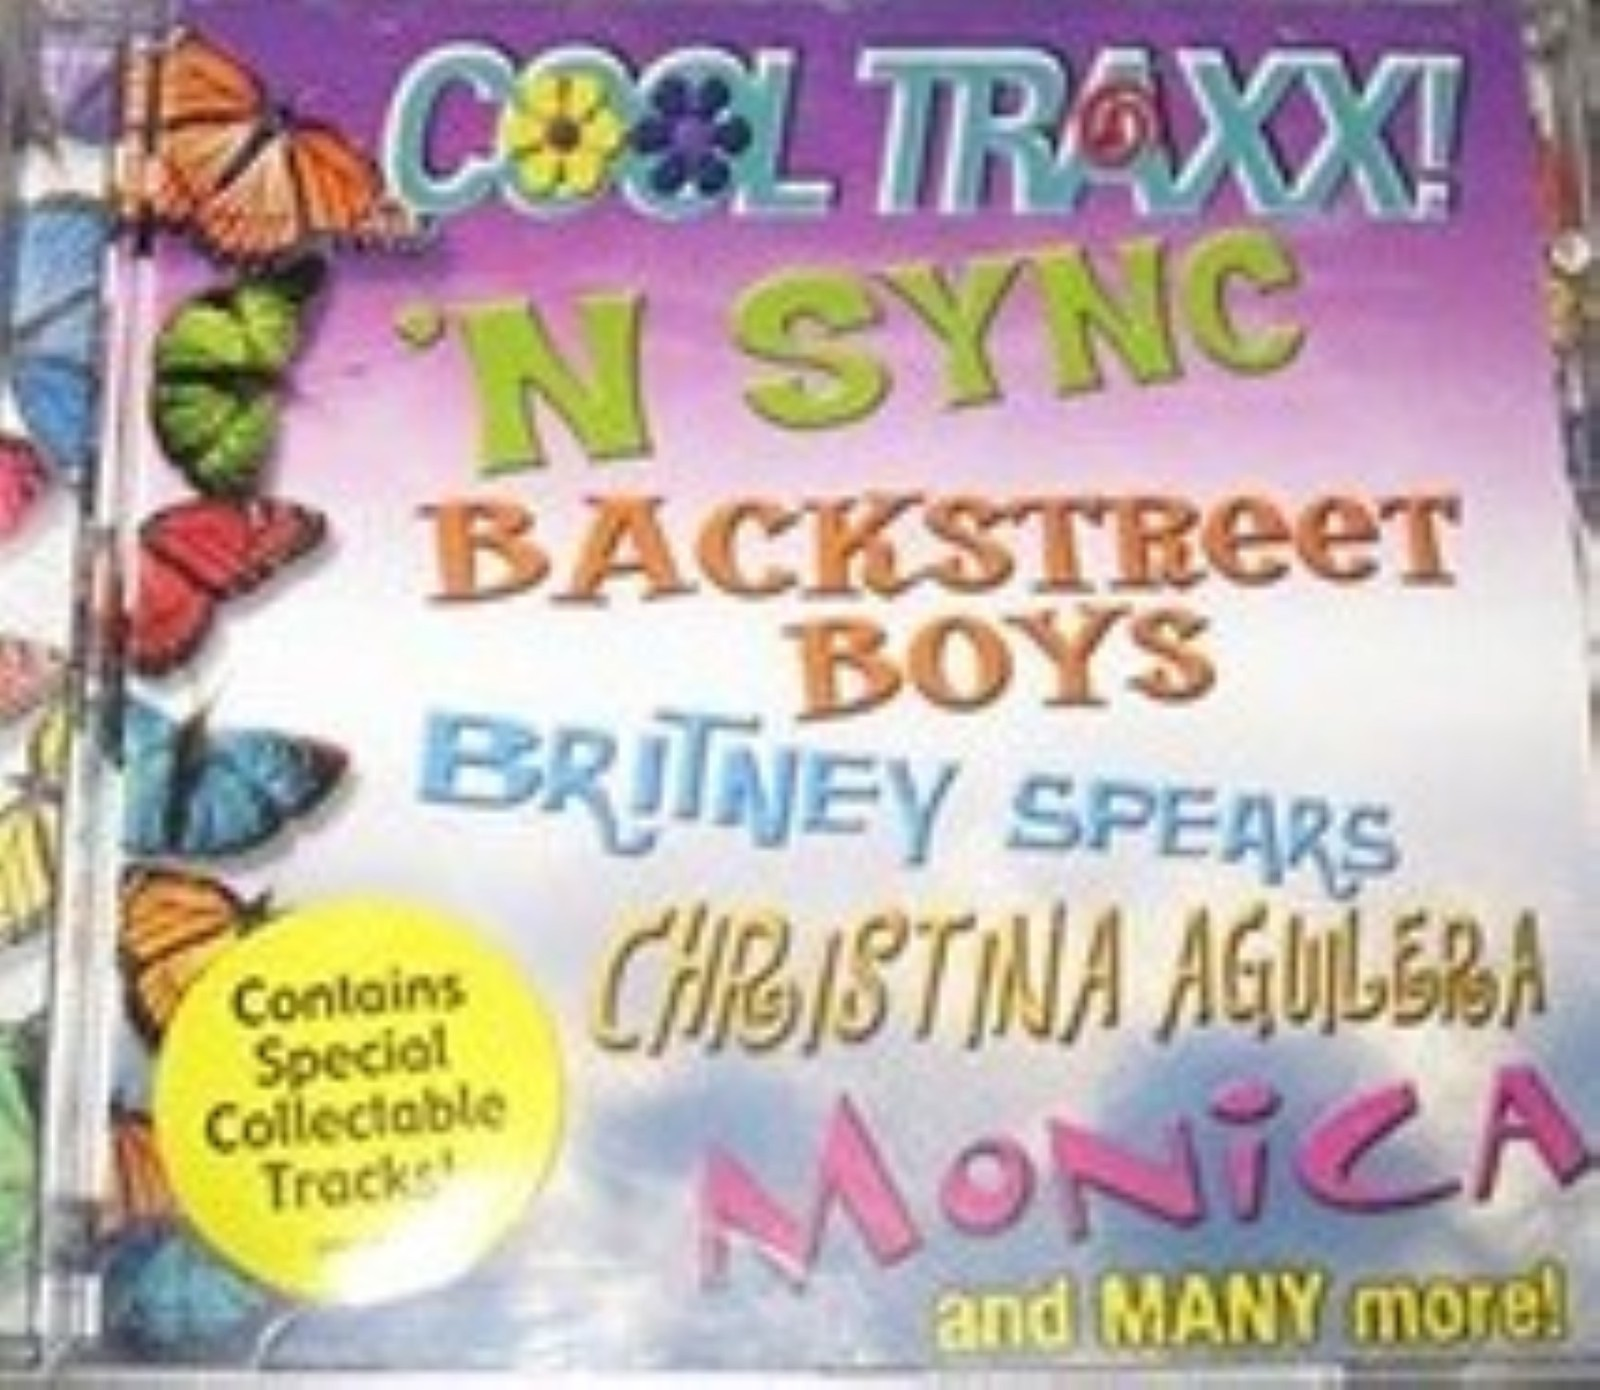 Cool Traxx Cd